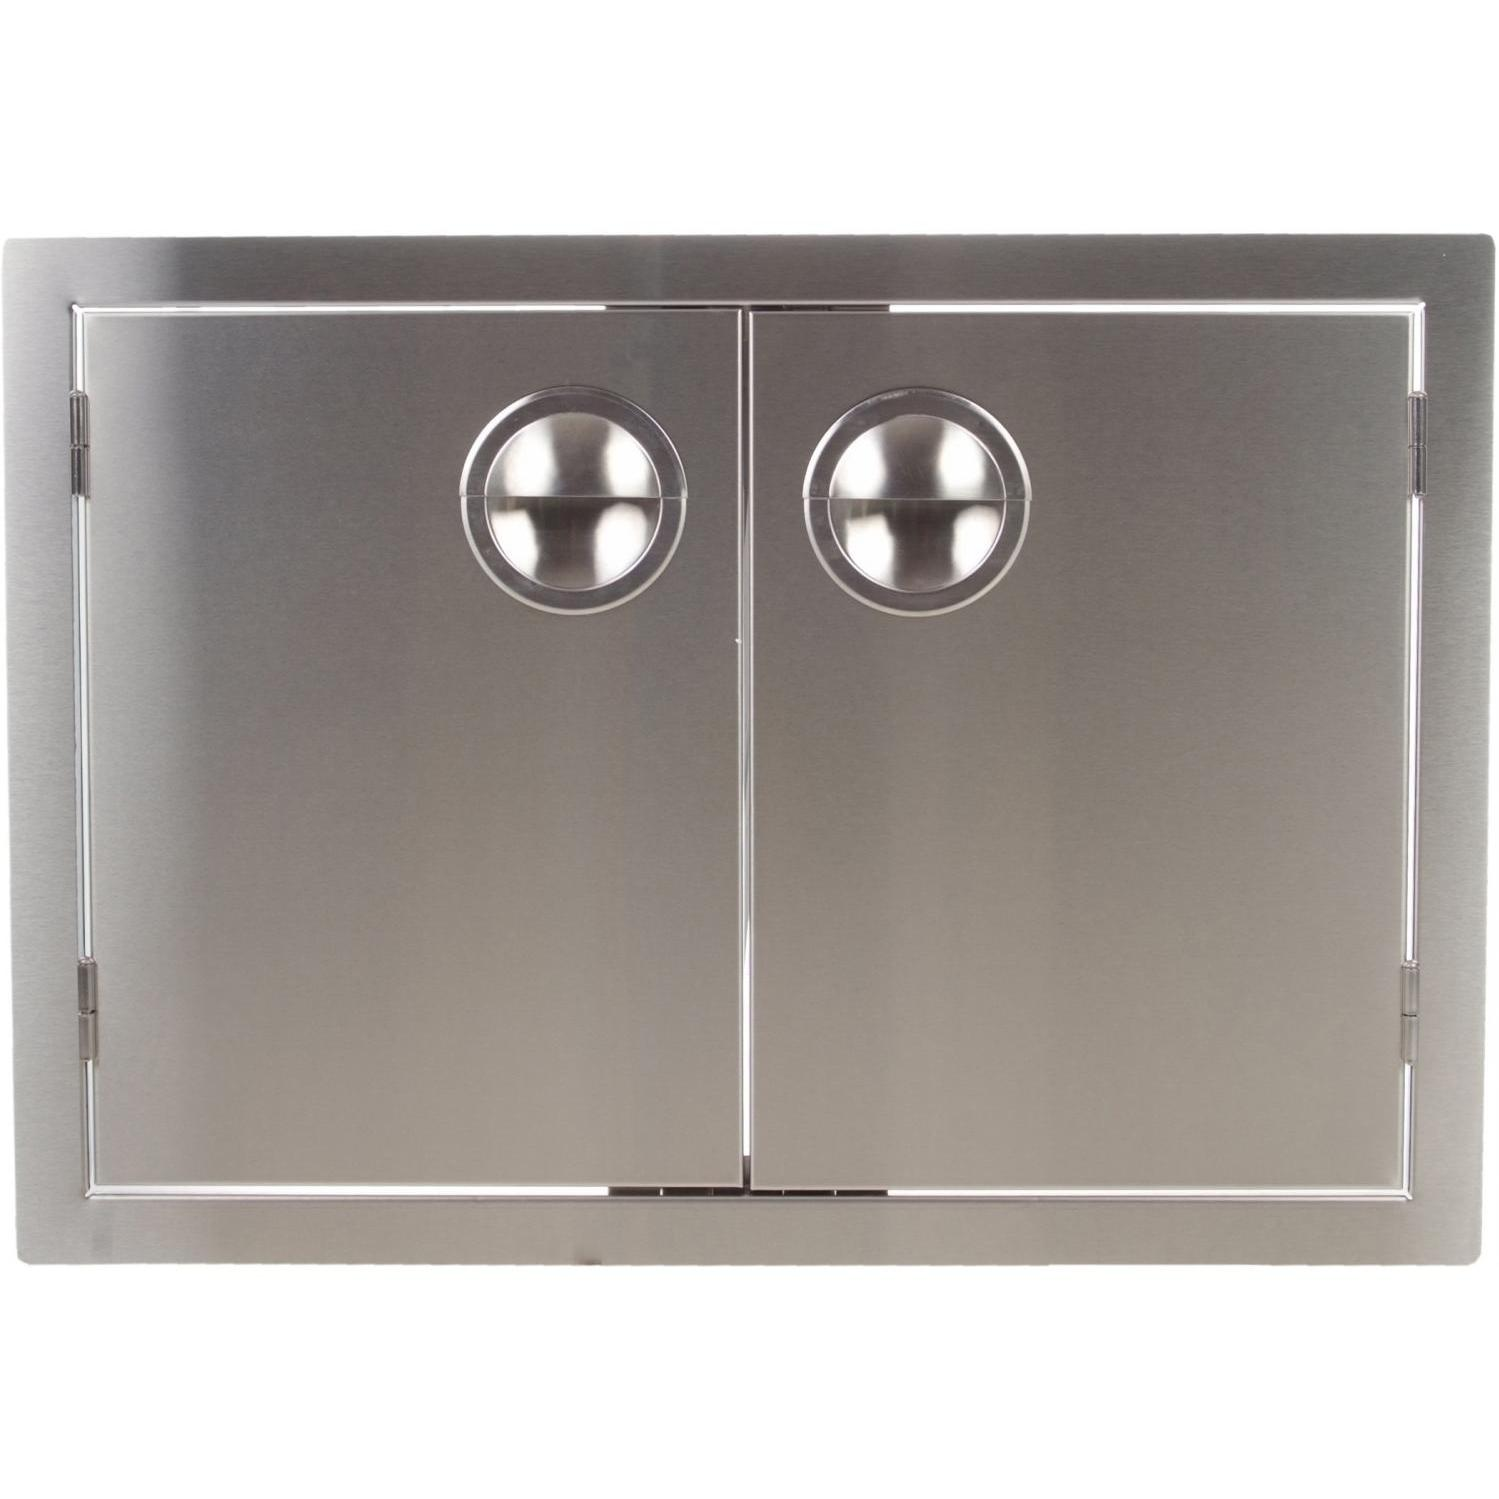 Bbqguys.com Portofino Series 36 Inch Stainless Steel Enclosed Cabinet Storage